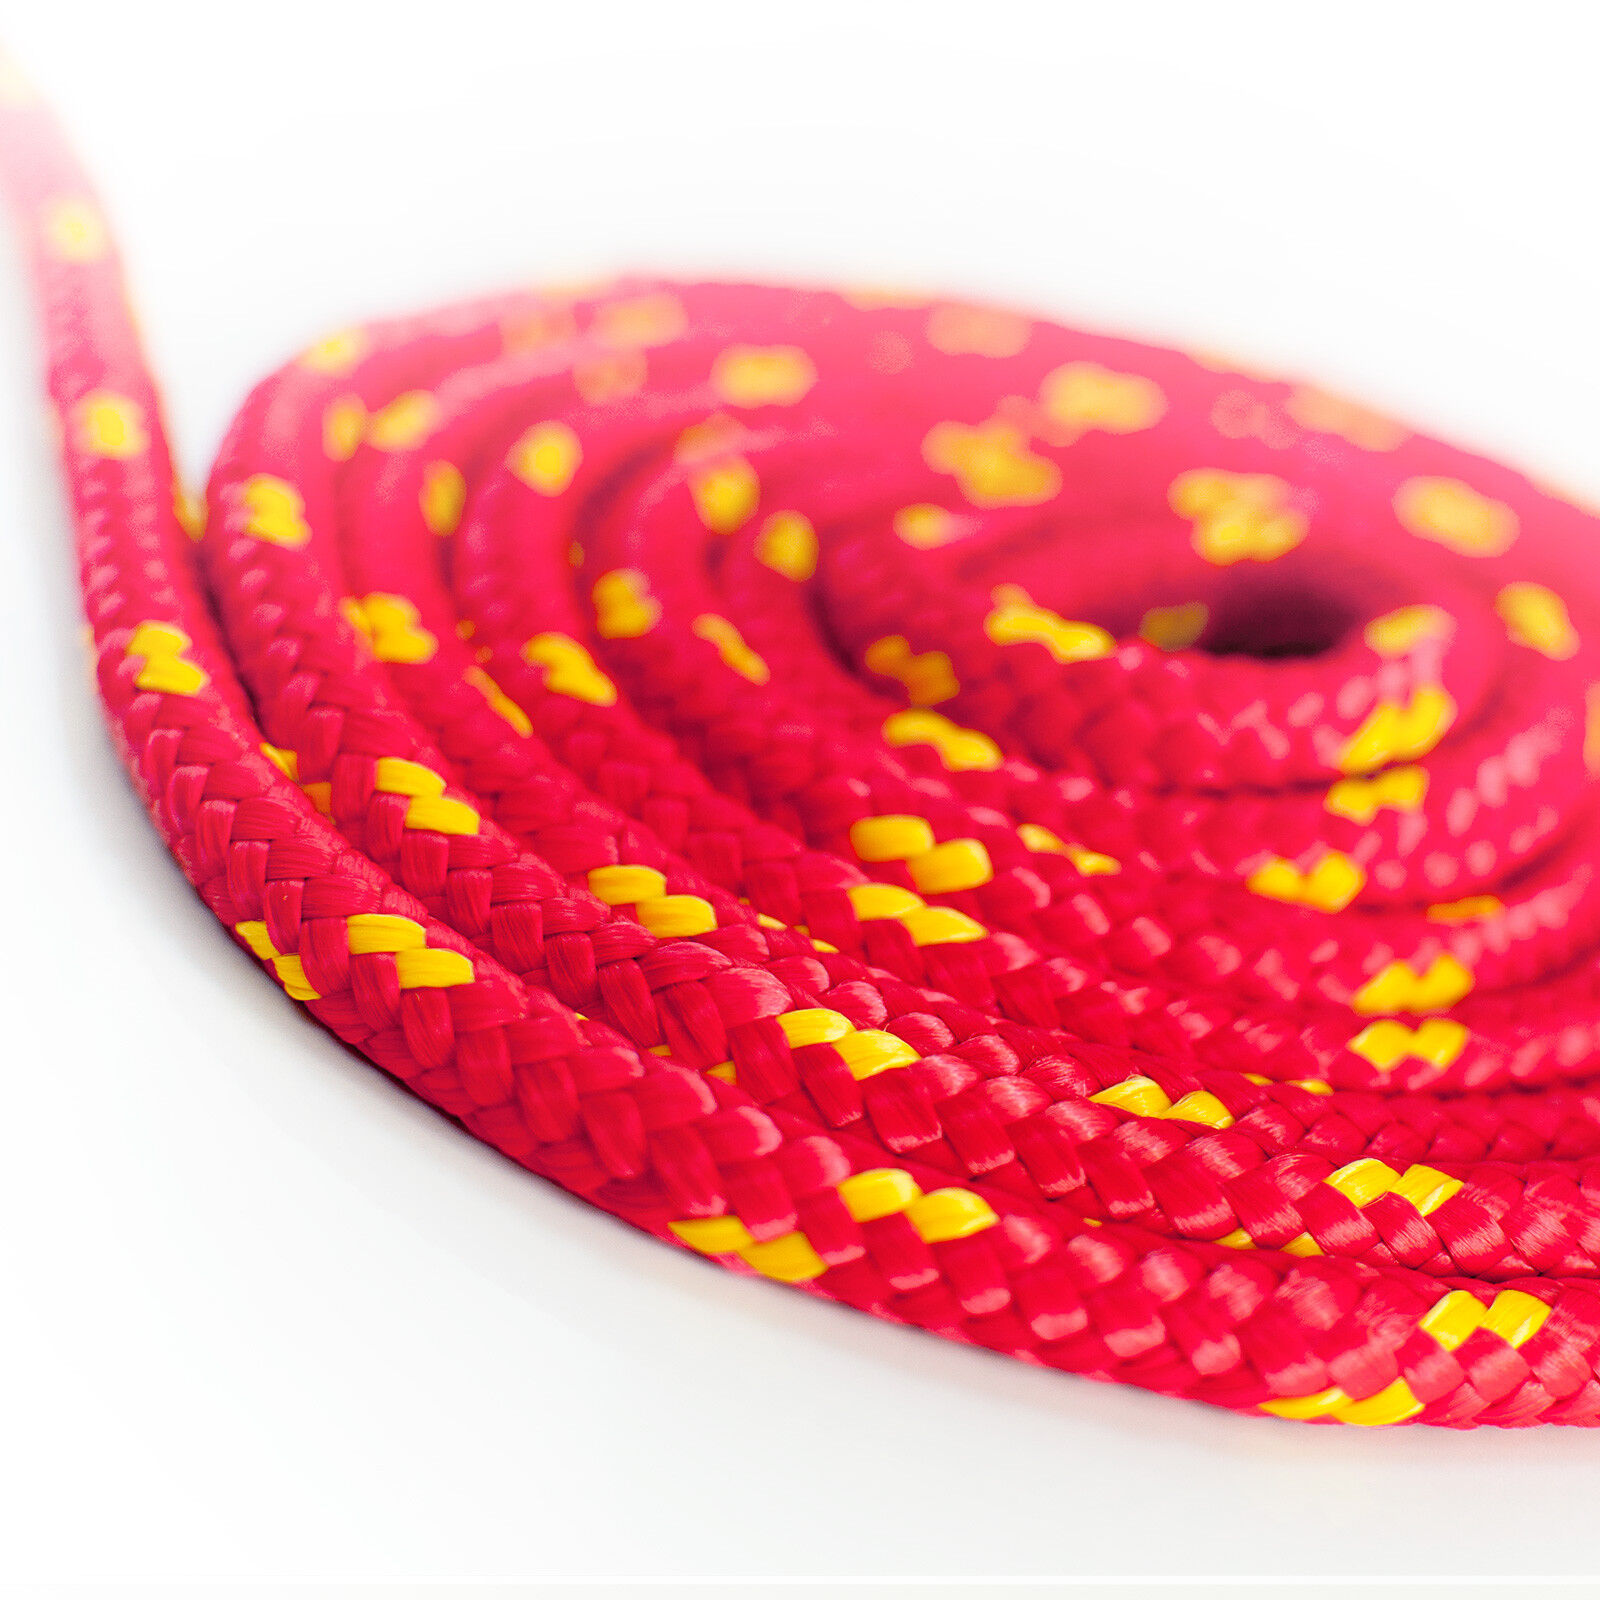 RED POLYPROPYLENE ROPE braided polyrope weatherproof durable UV-stable synthetic